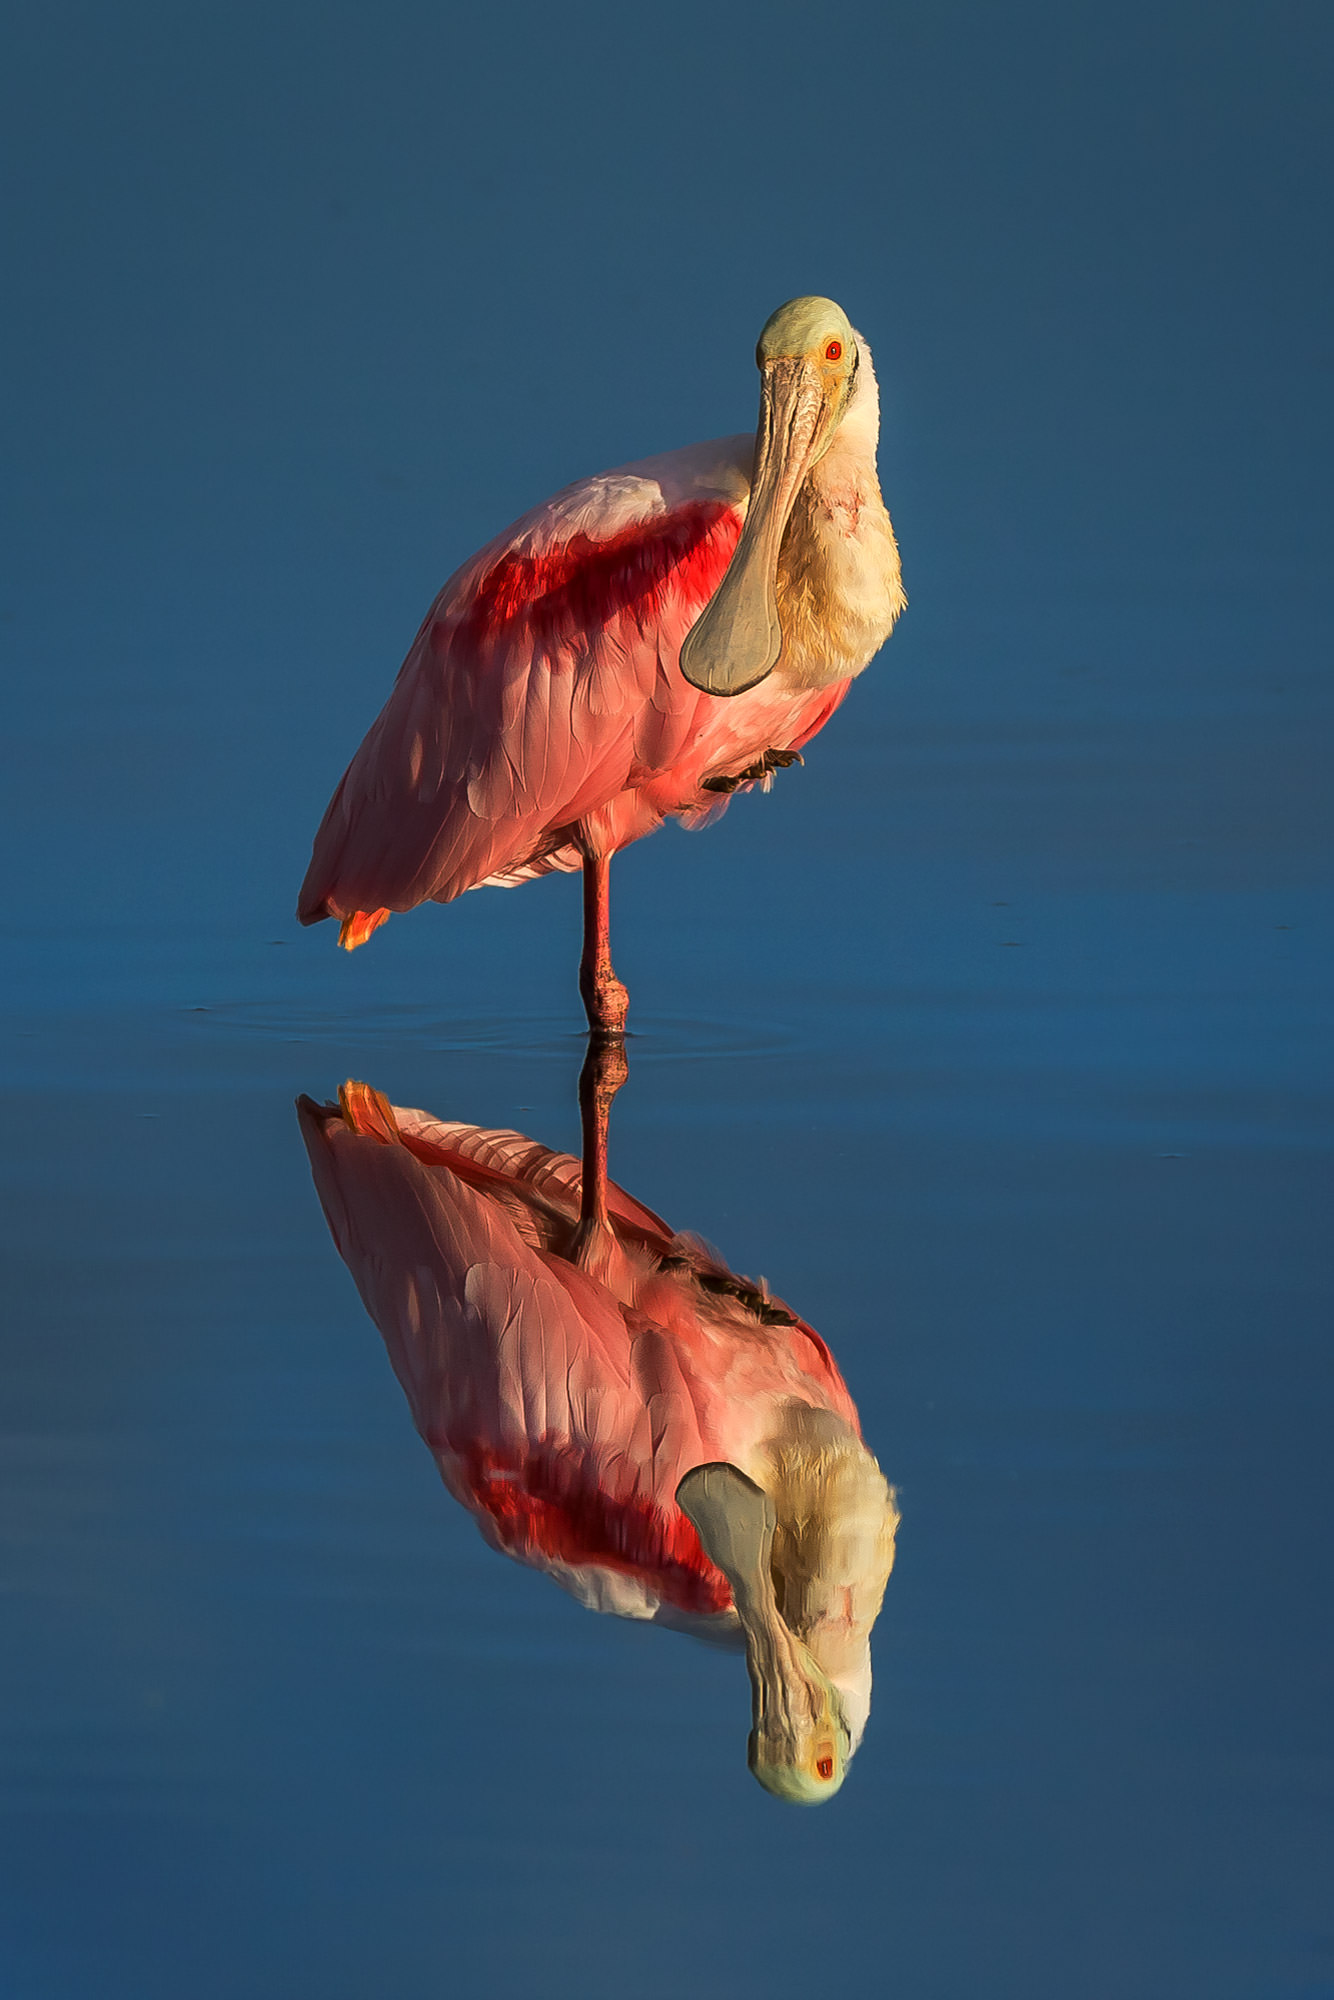 Spoonbill, Roseate Spoonbill, Florida, limited edition, photograph, fine art, wildlife, photo